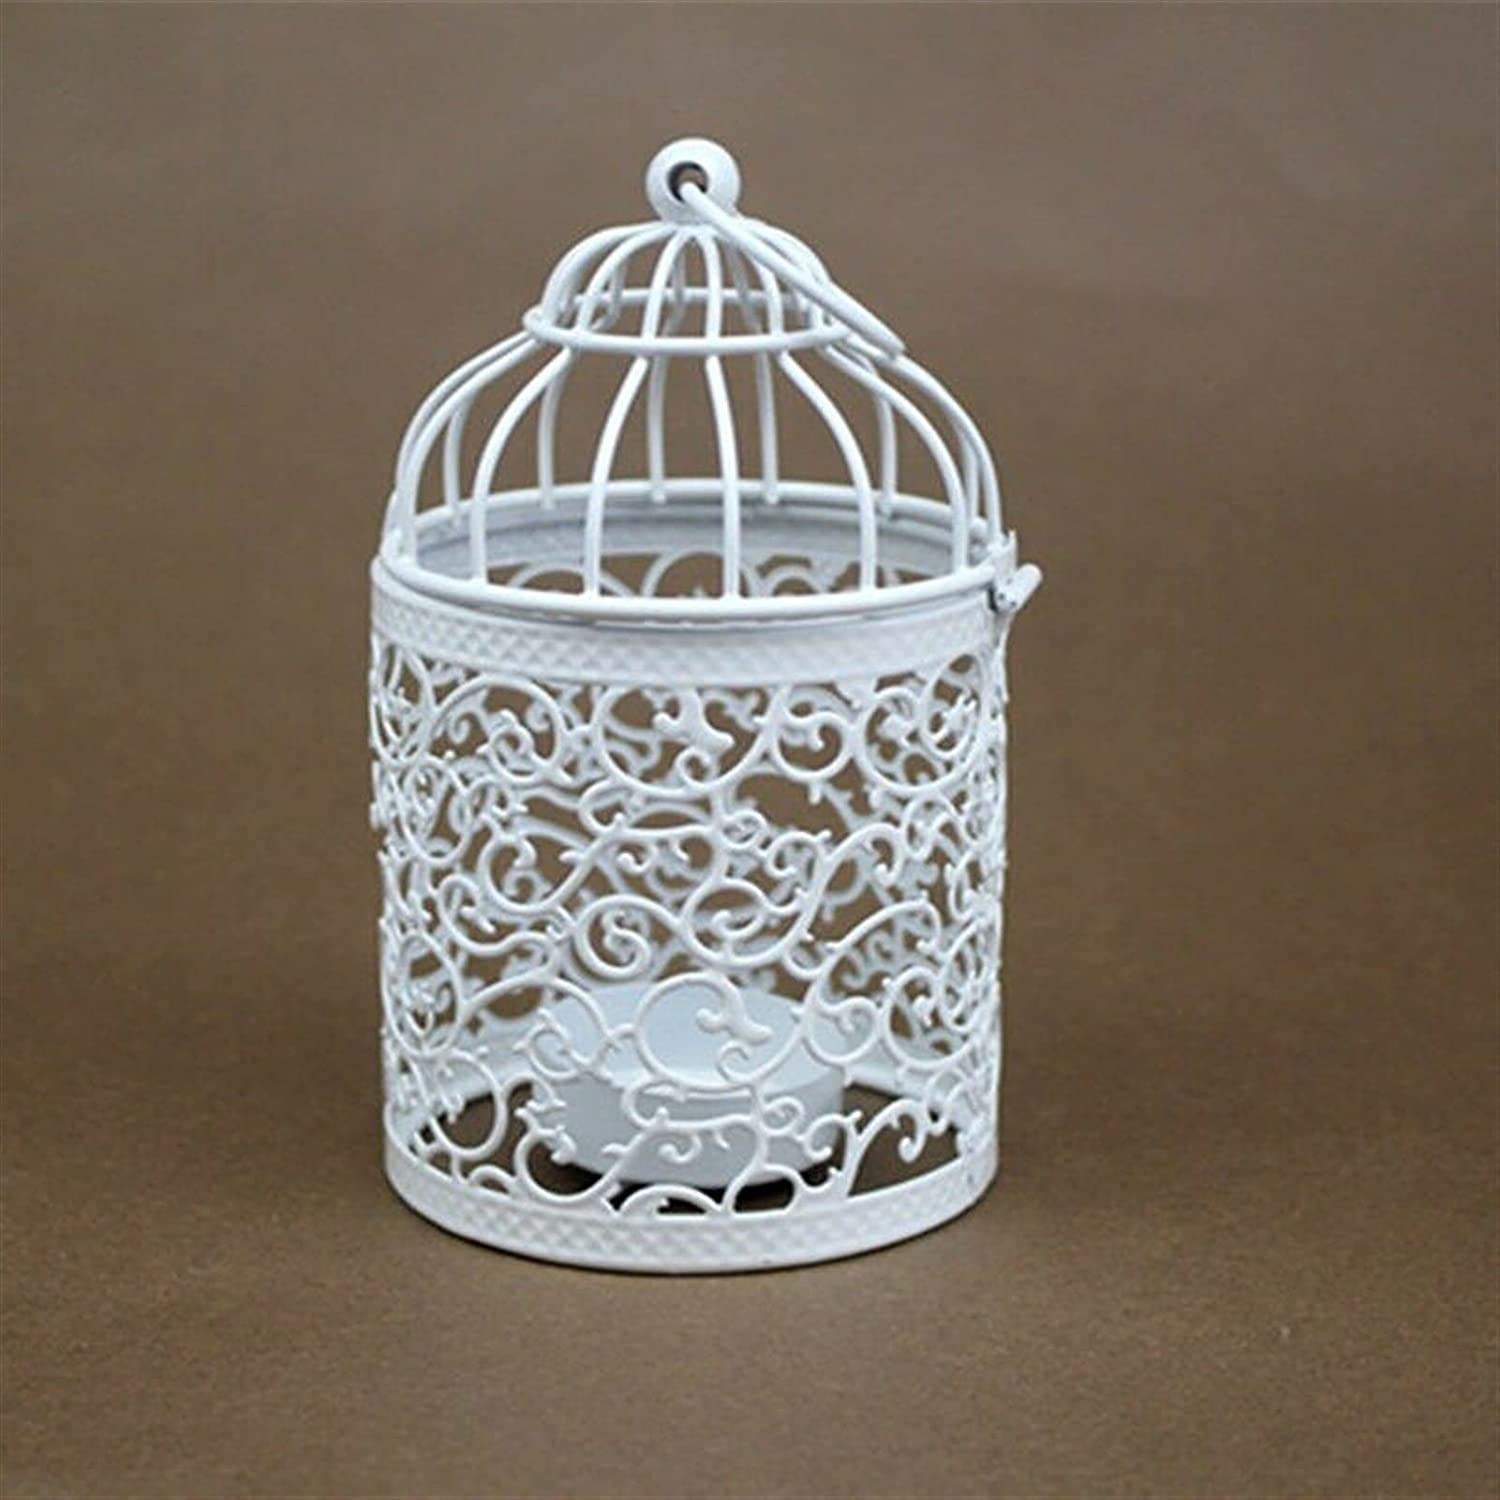 GLADMIN Deluxe Max 58% OFF White Hollow Hanging Candle Holde Birdcage Holder